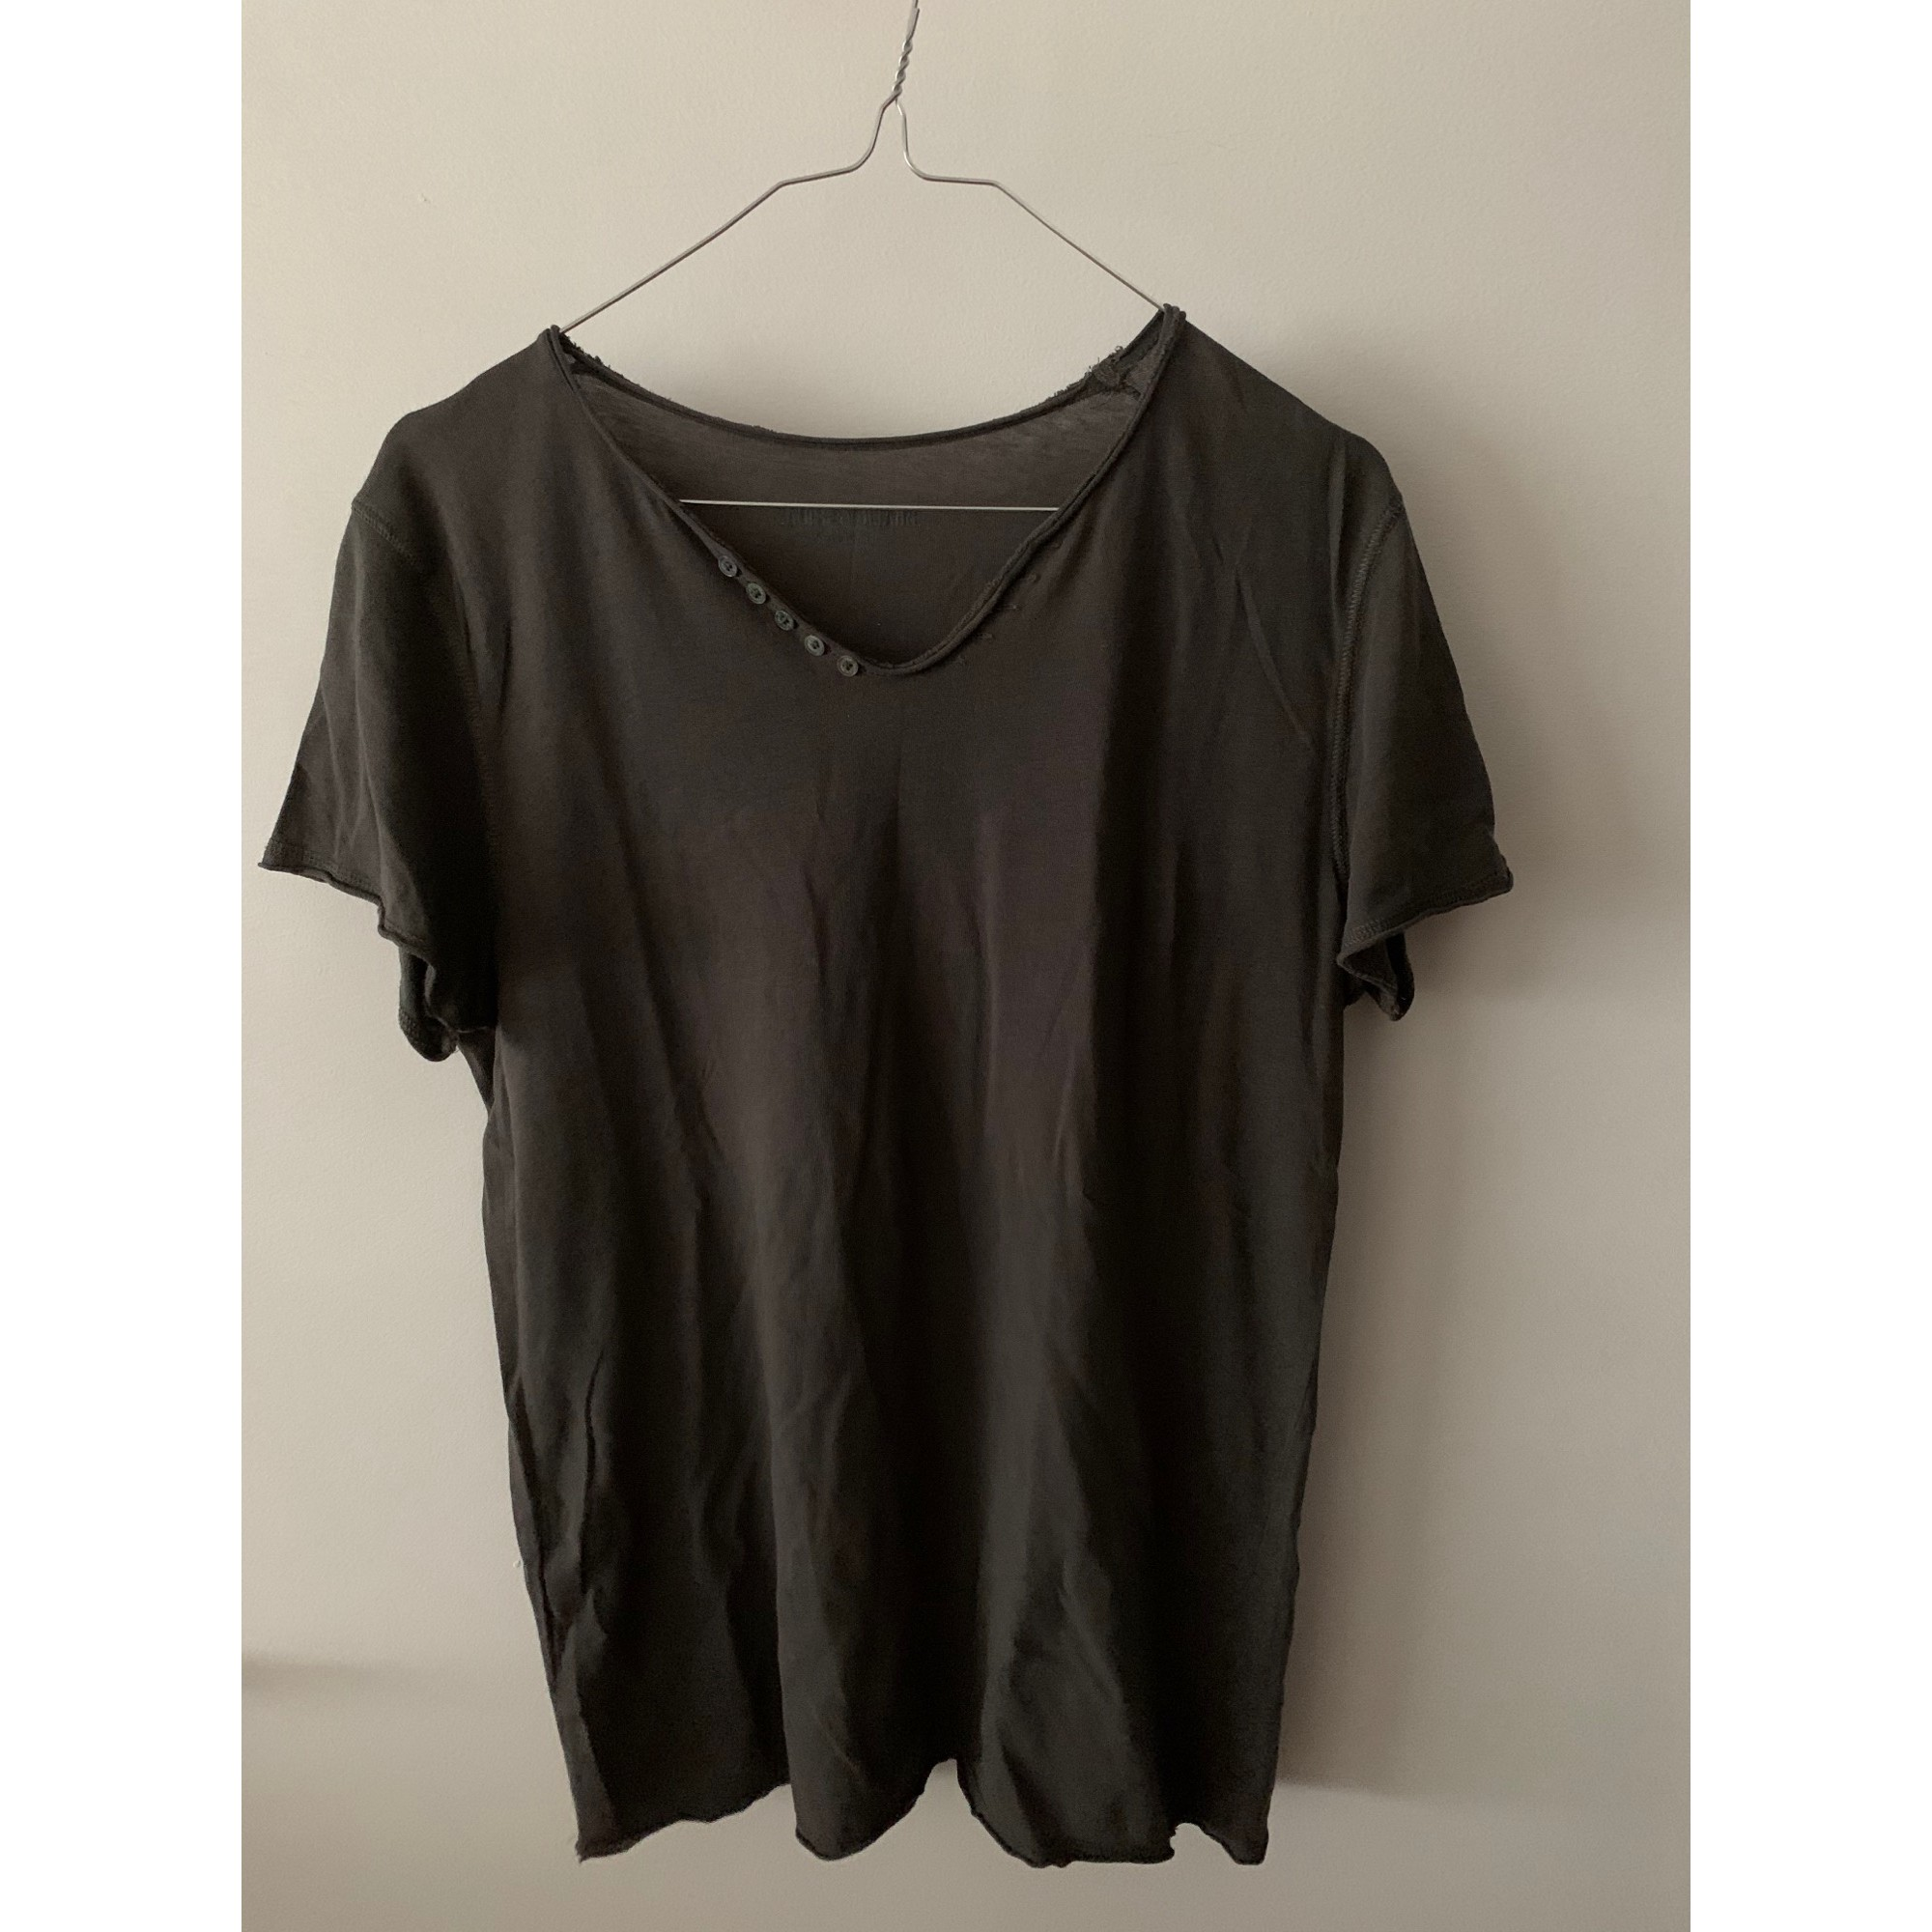 Tee-shirt ZADIG & VOLTAIRE Gris, anthracite